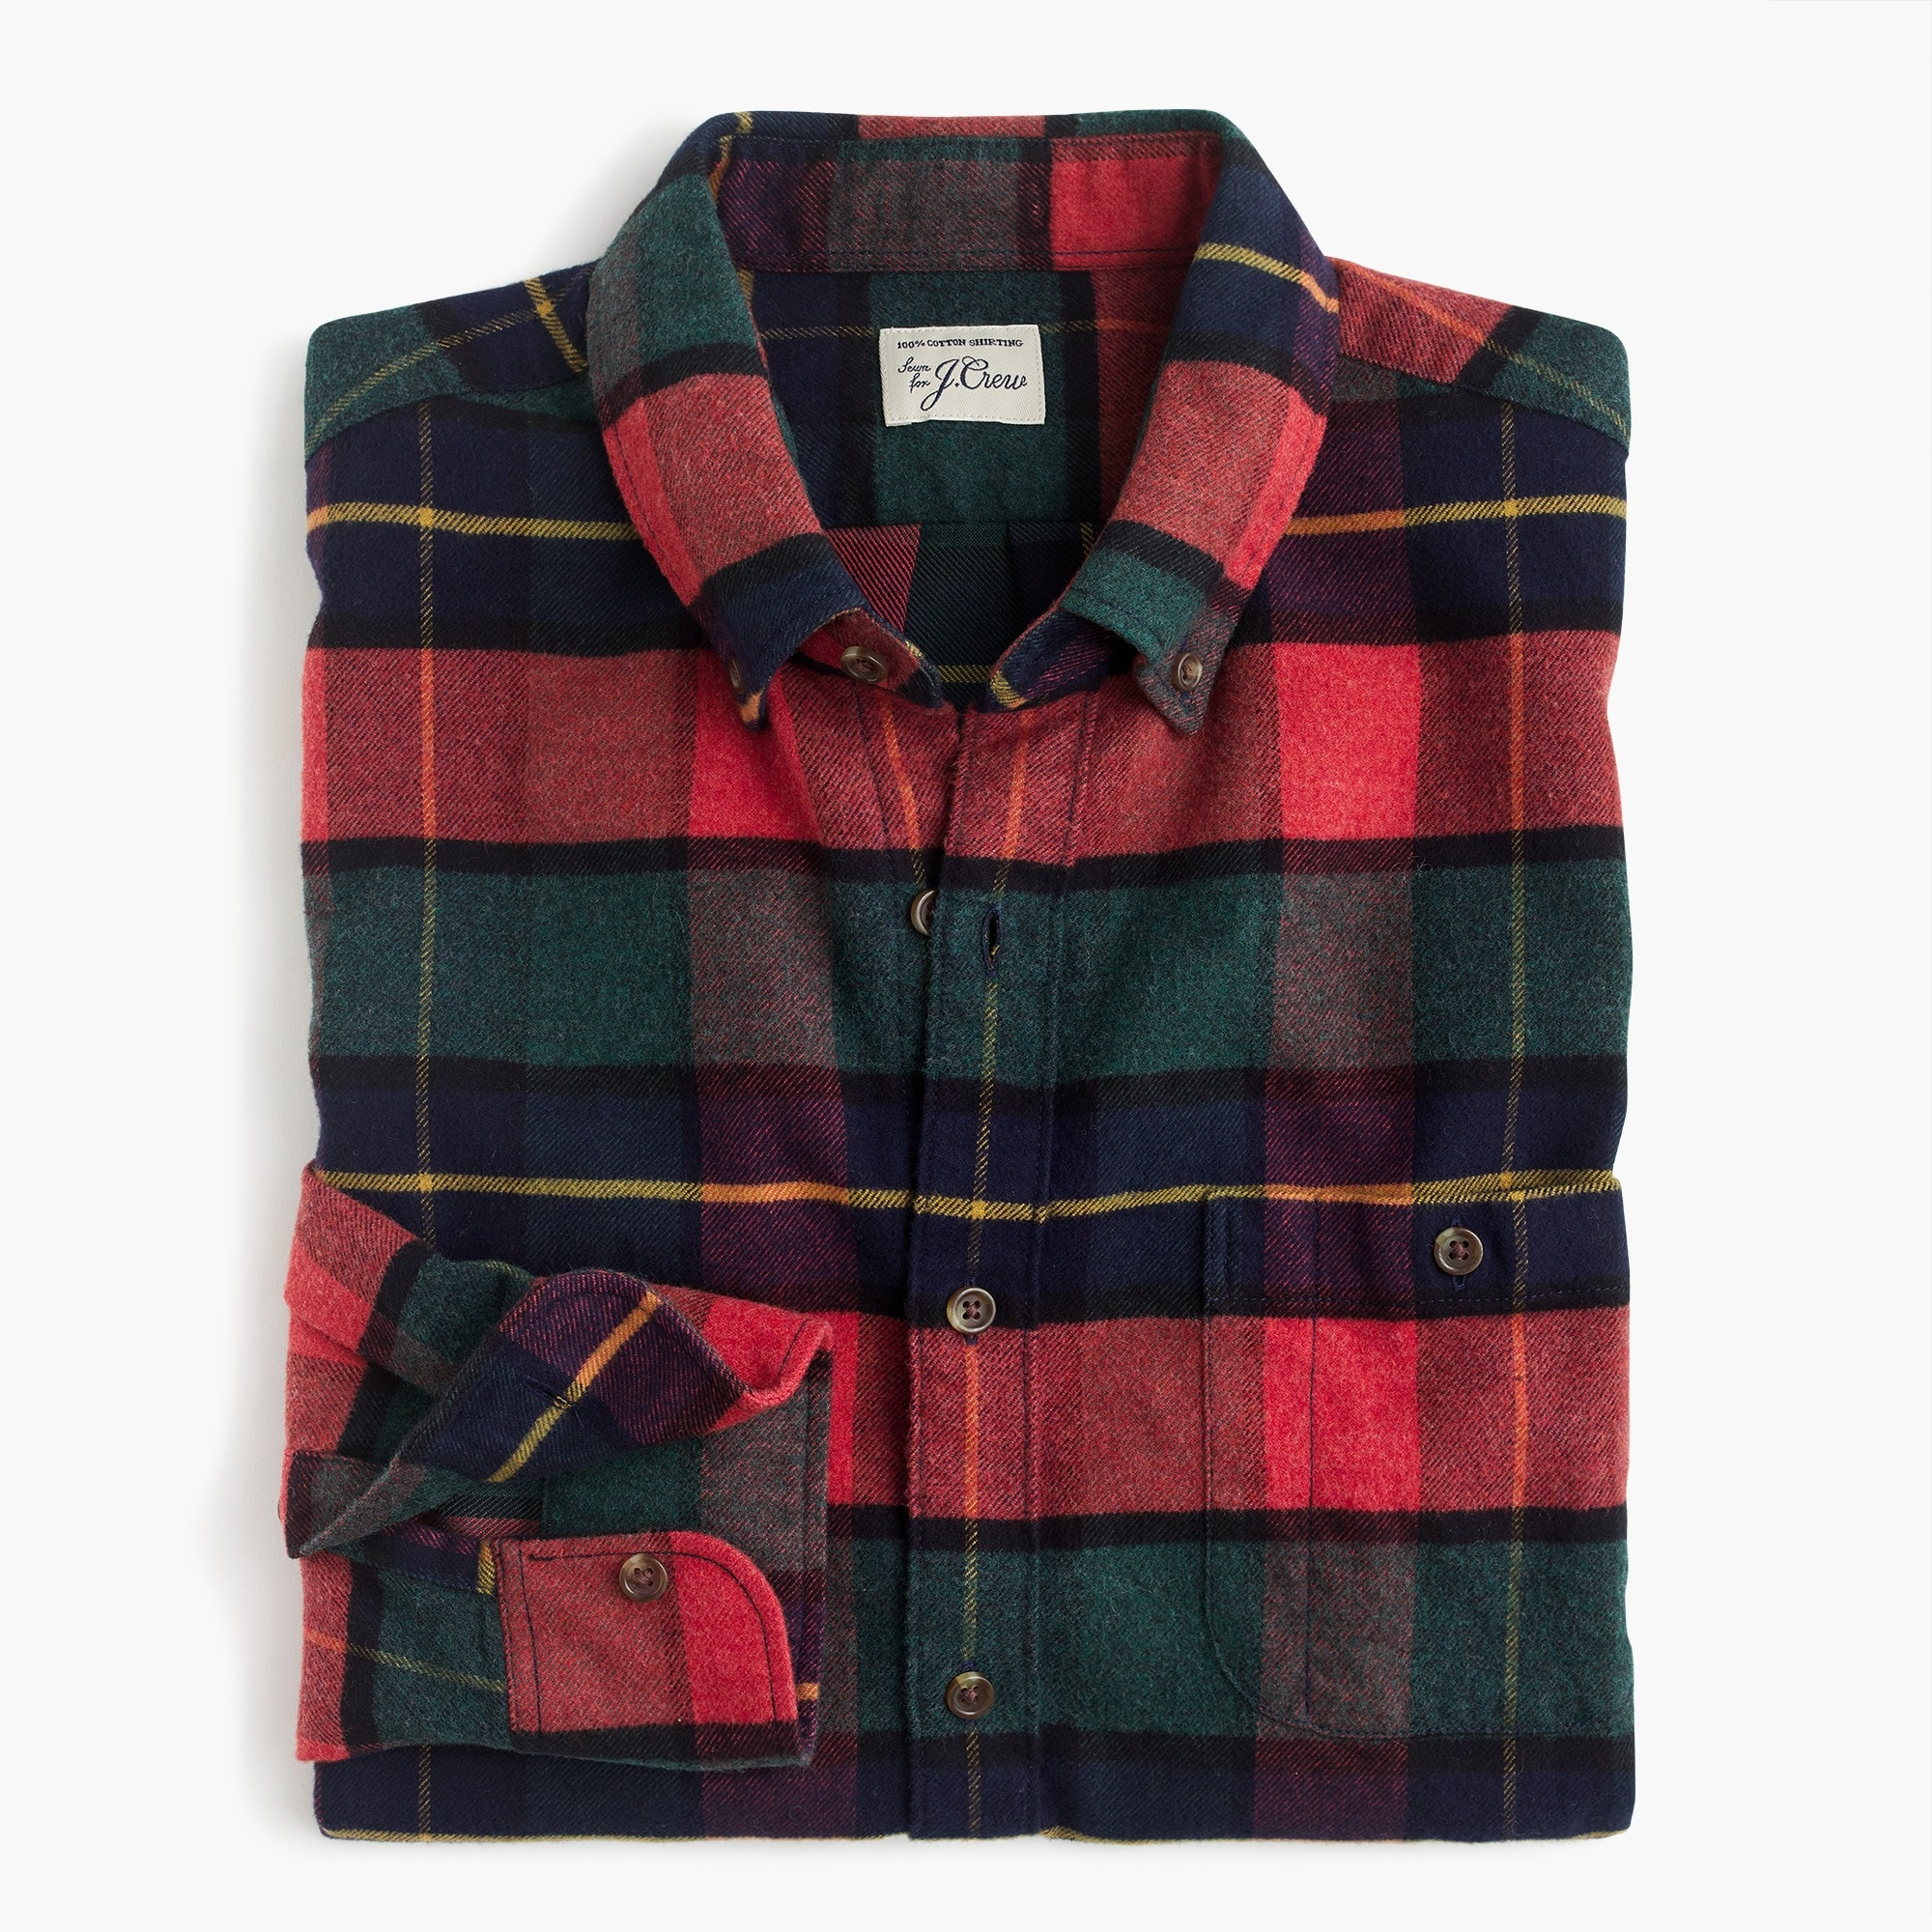 Image 1 for Slim brushed heather elbow-patch shirt in red plaid